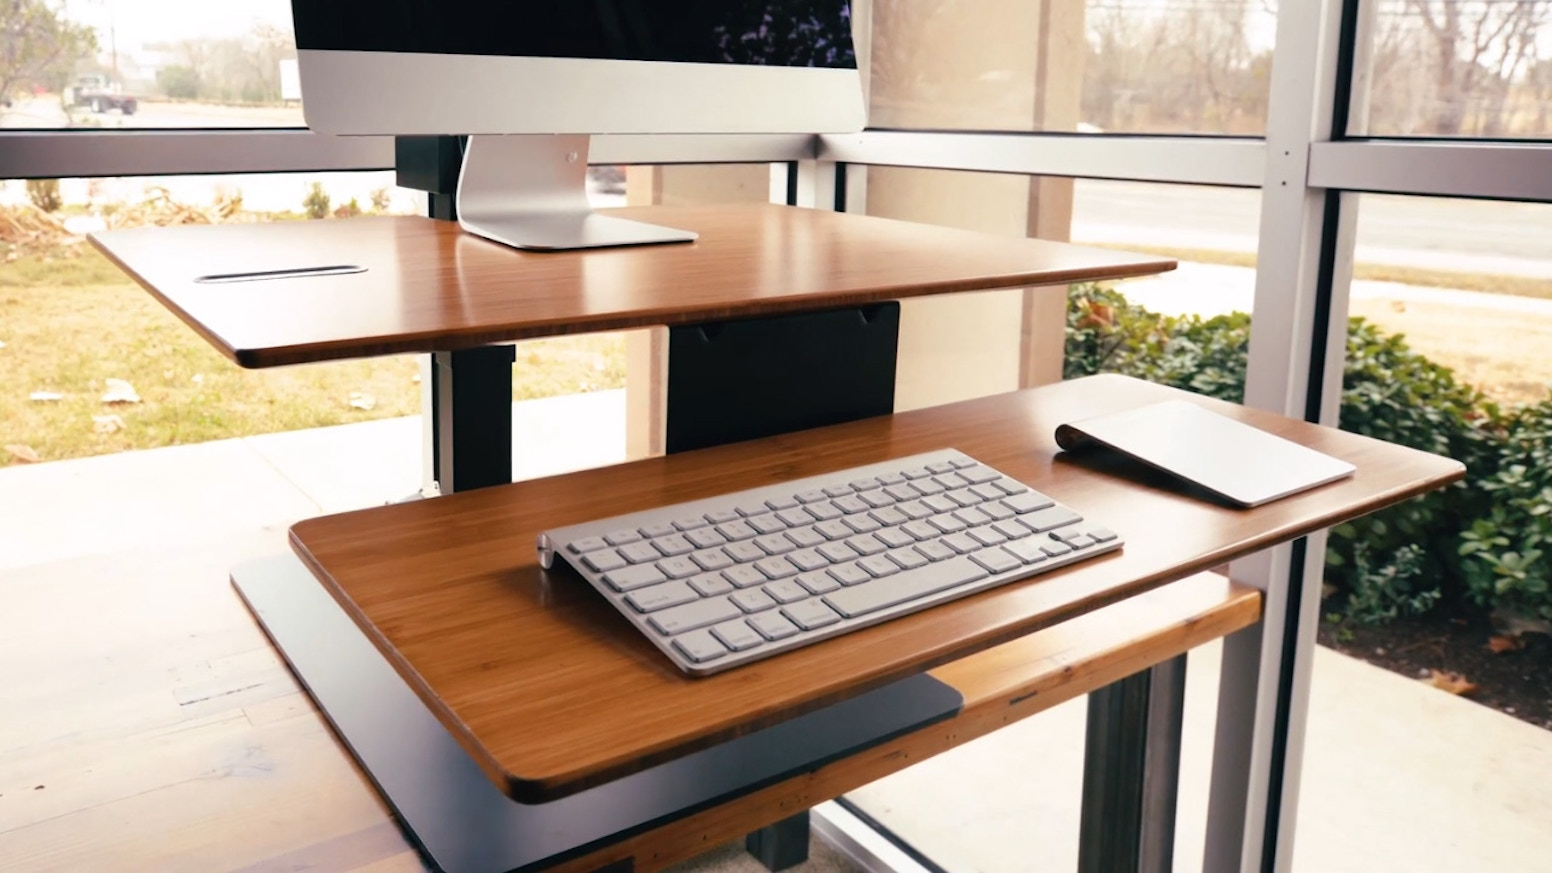 E7 Electric Standing Desk Converter By Uplift Desk By